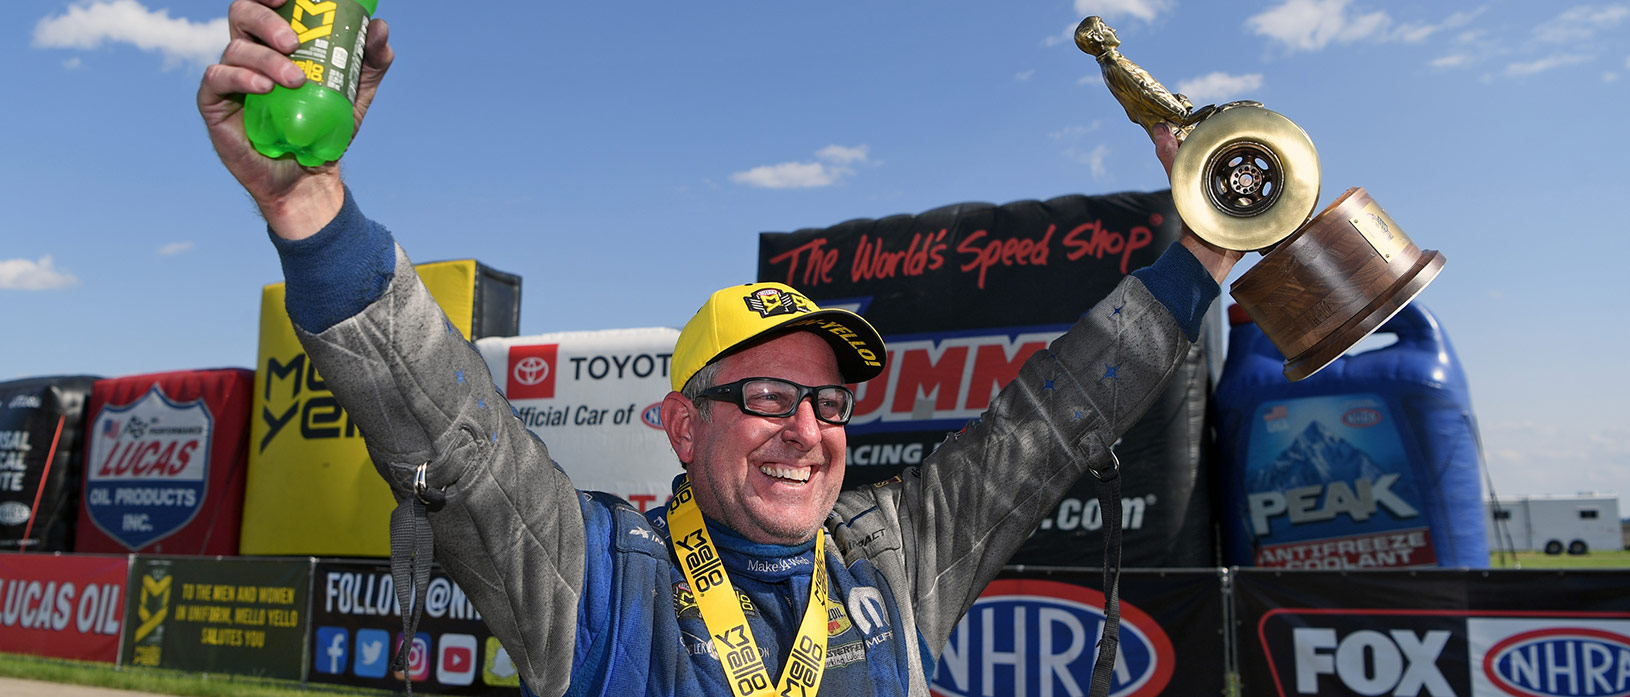 Tommy Johnson Jr. celebrating his win at the NHRA Route 66 Nationals